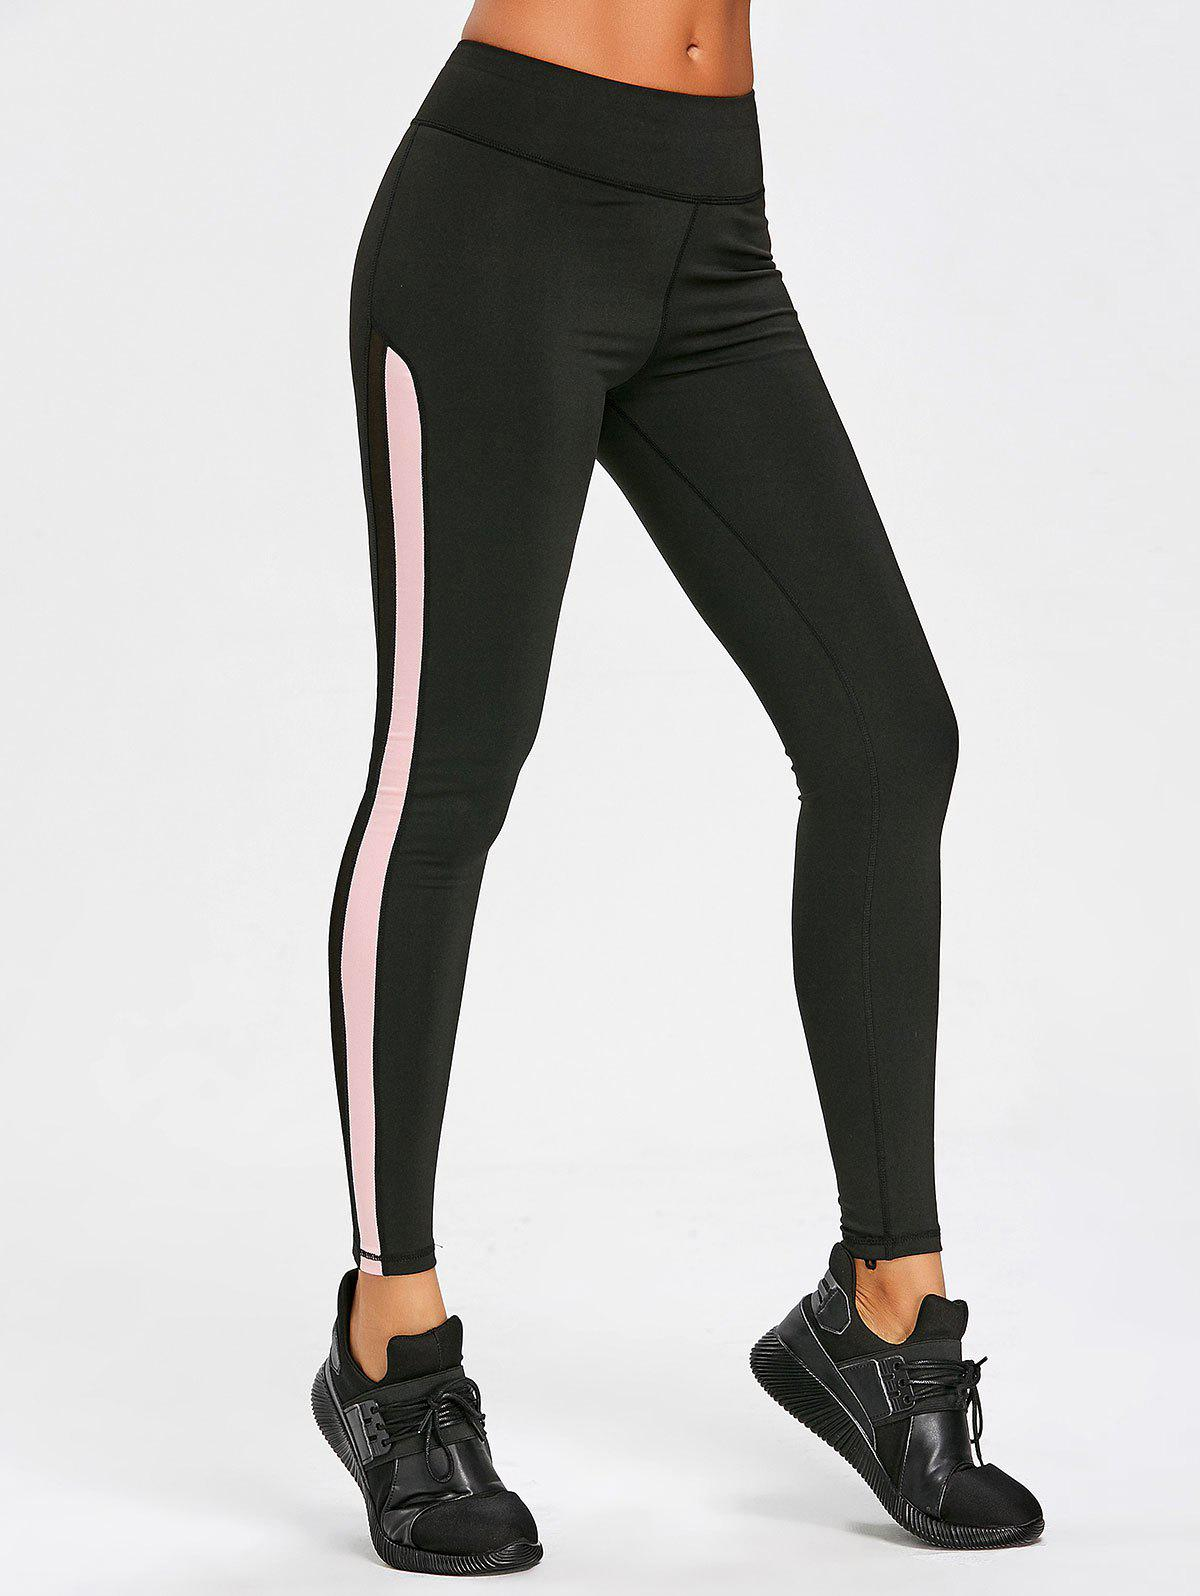 Mesh Insert Sports Leggings 257740604